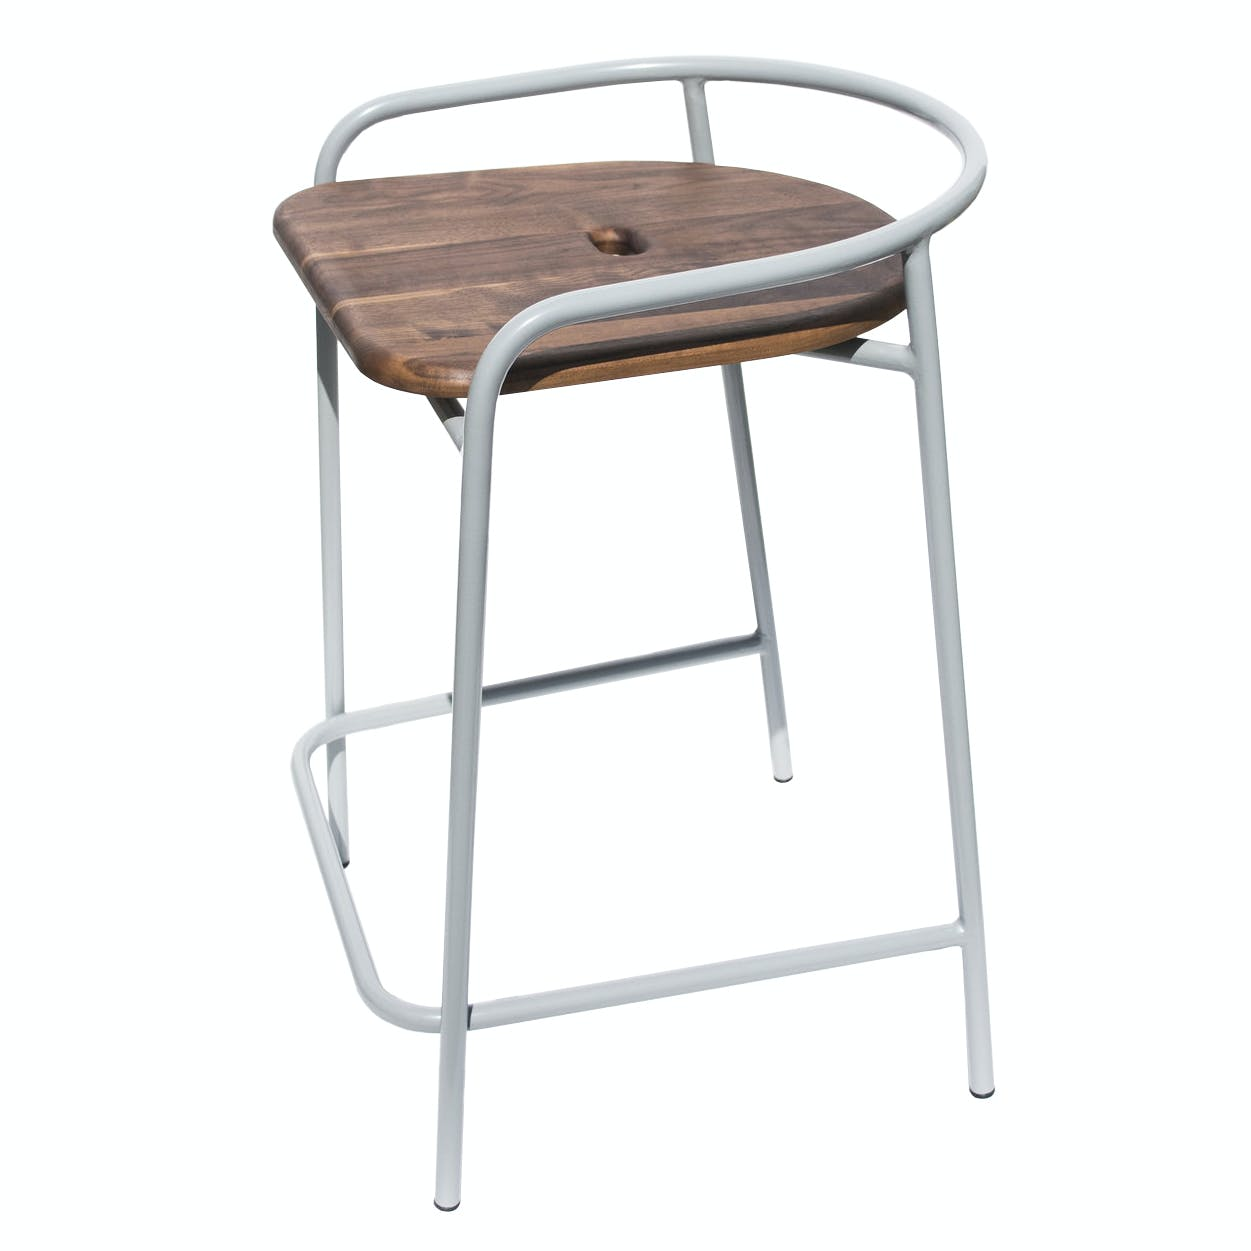 Division-12-furniture-l42-bender-counter-stool-side-haute-living-thumbnail